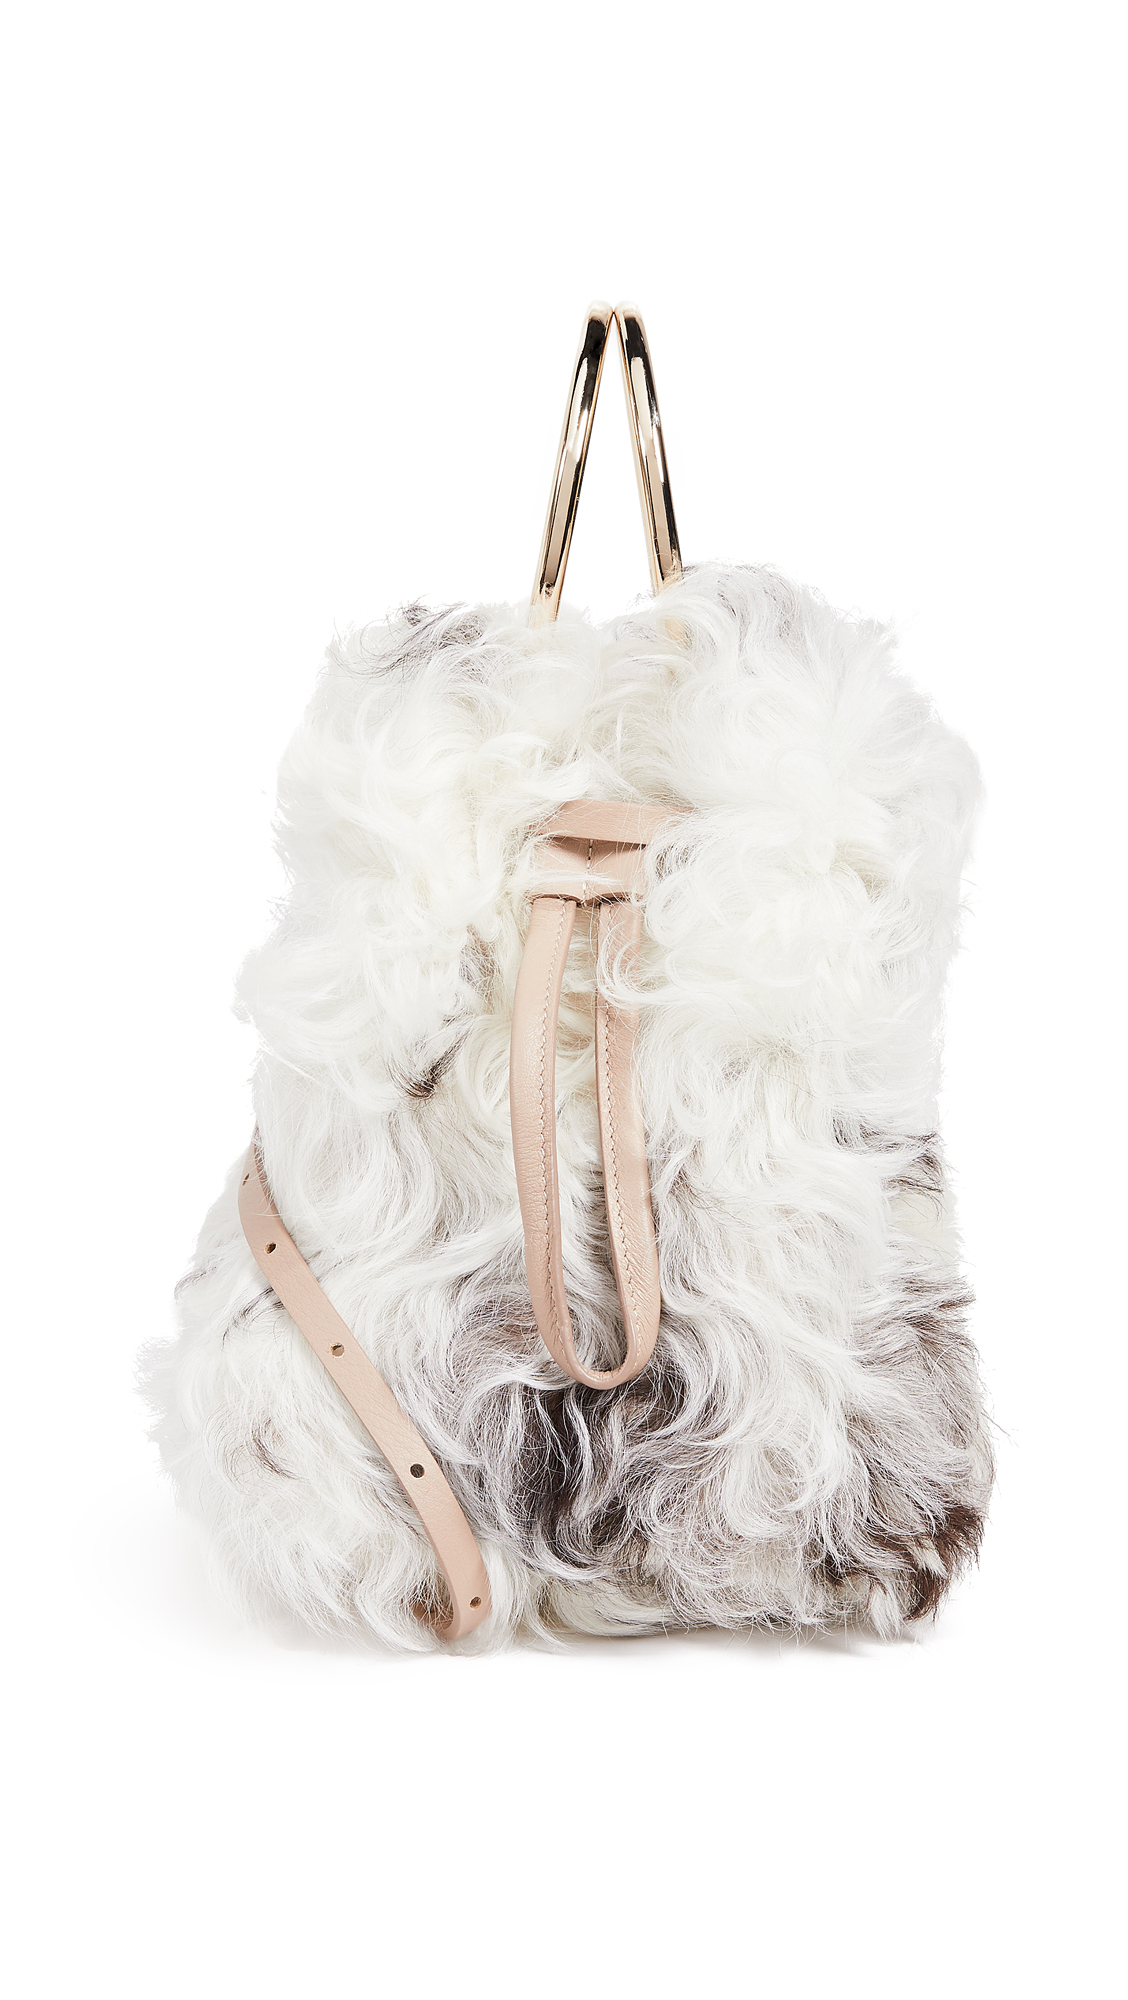 SMALL SHEARLING BUCKET WITH METAL RINGS from Shopbop